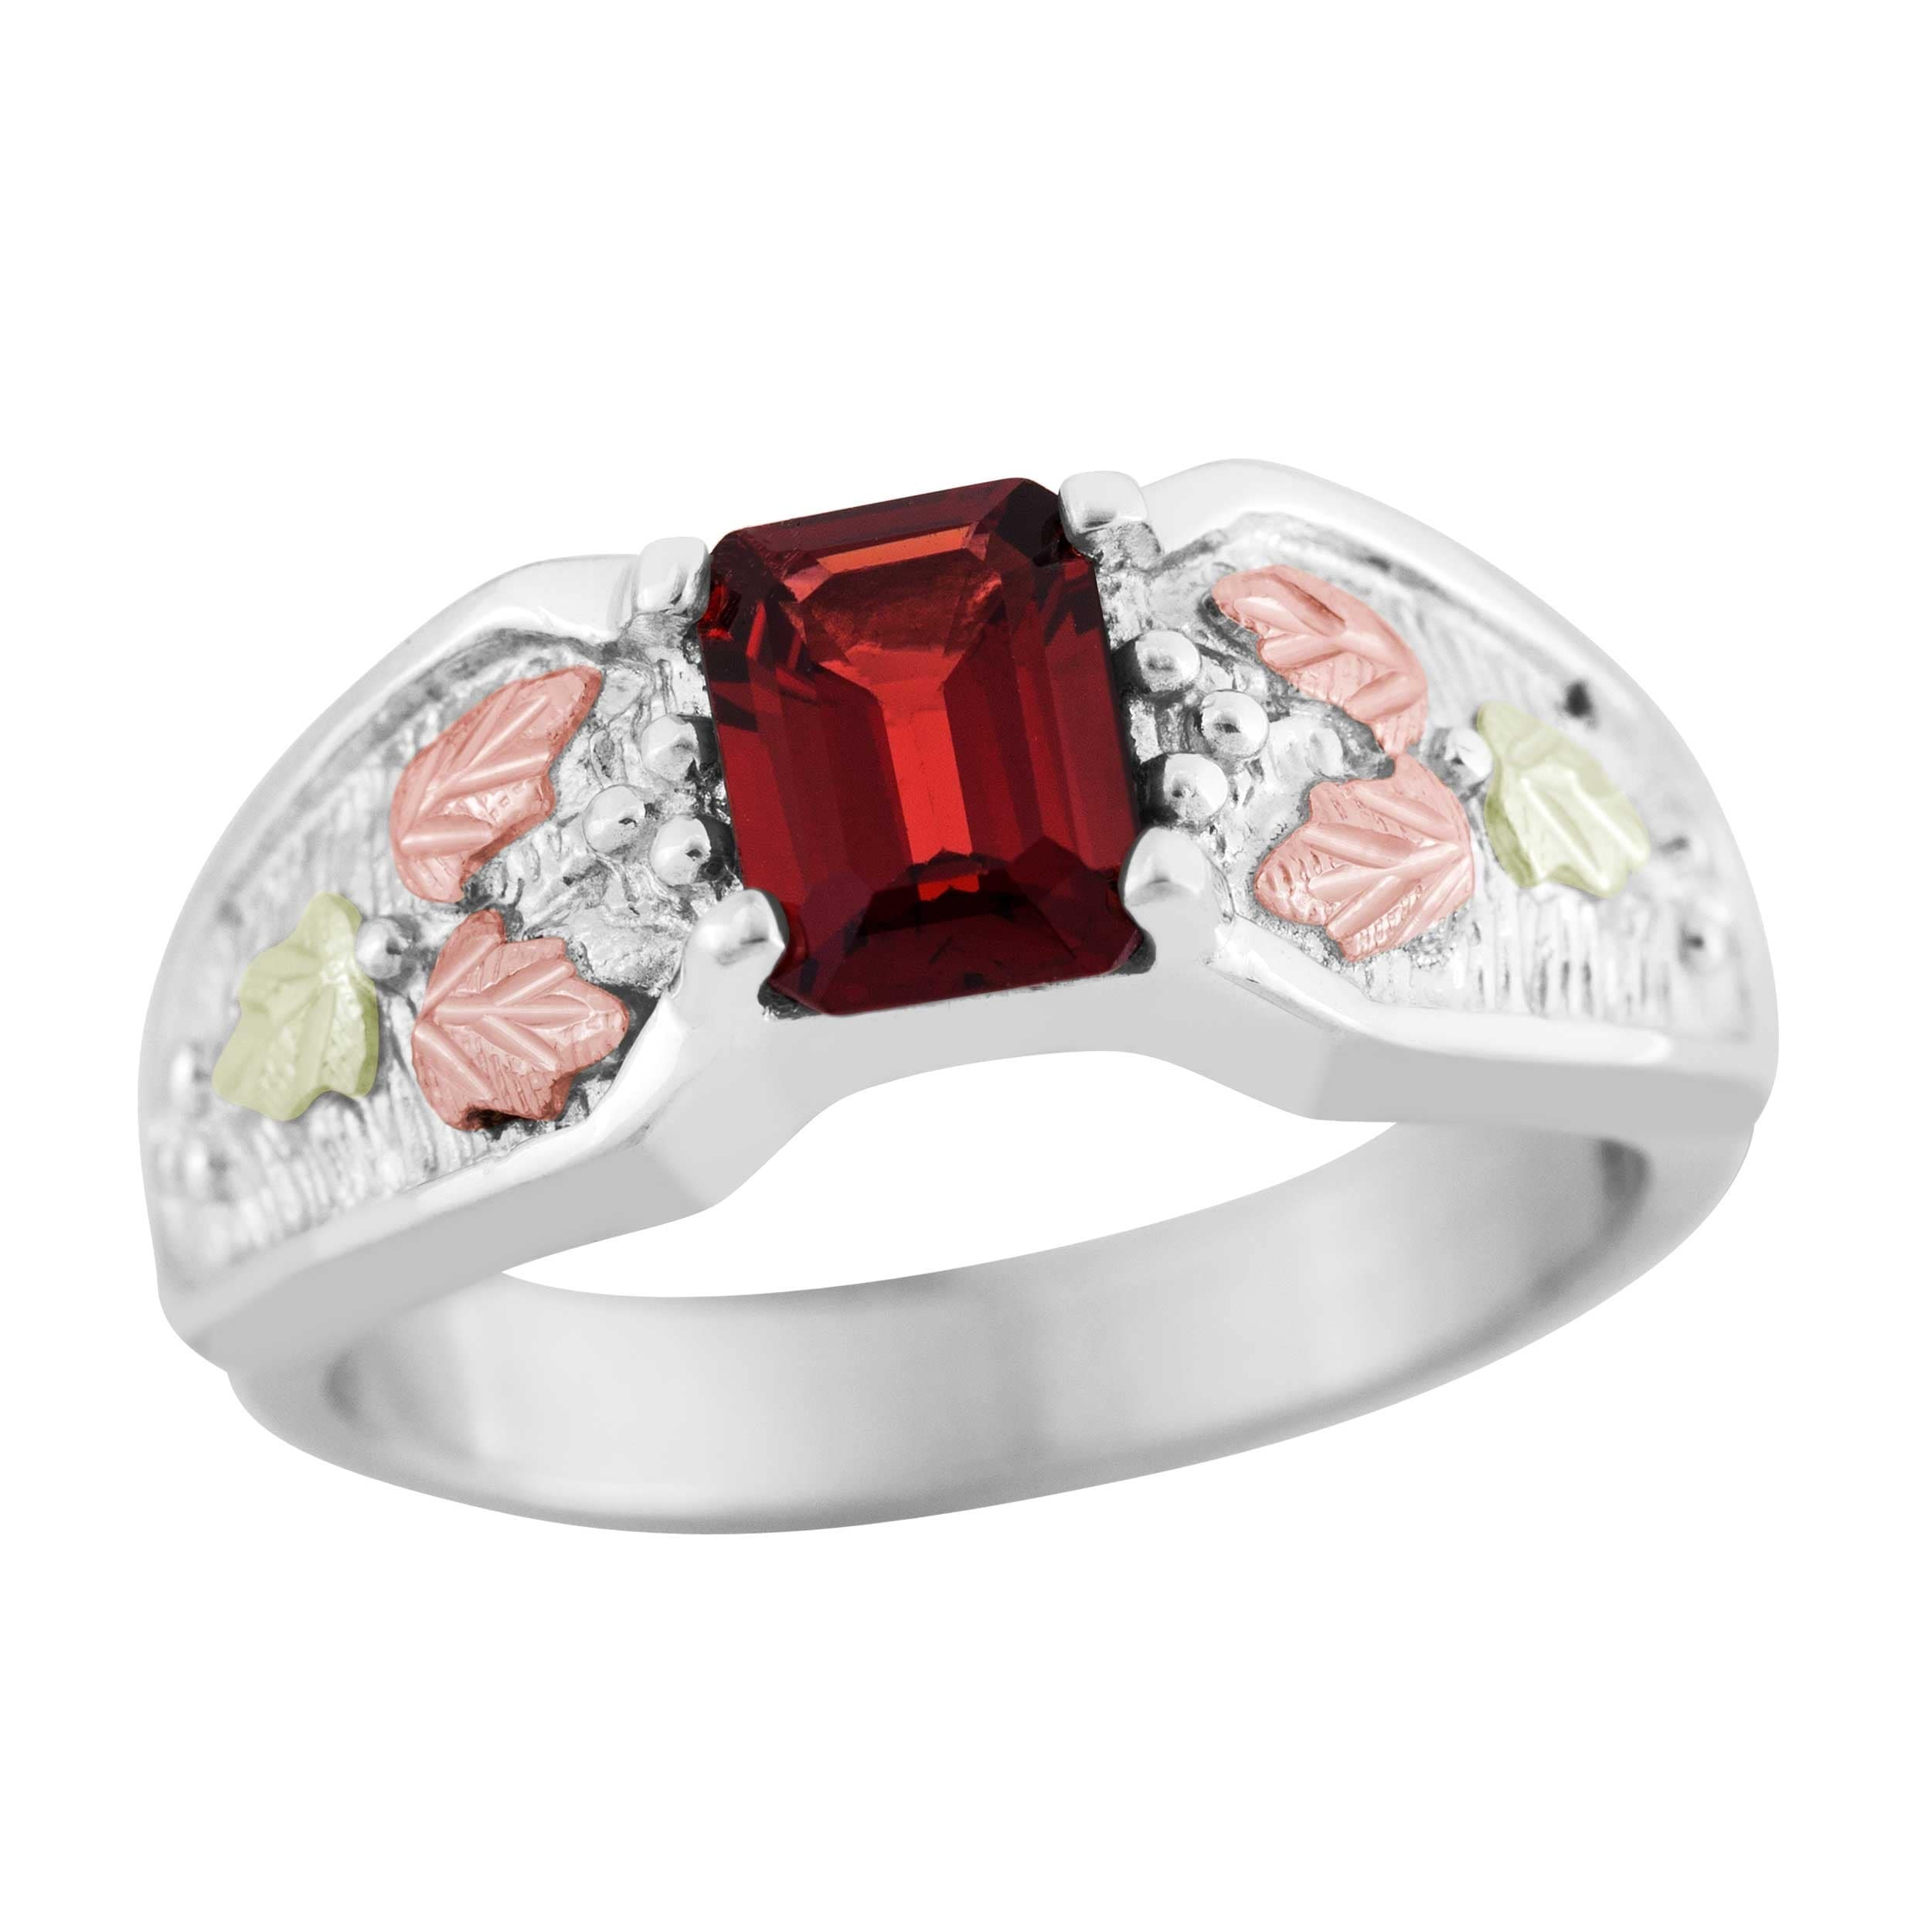 products yurman garnet rings enlarged petite ring diamond albion jewelry david and cocktail